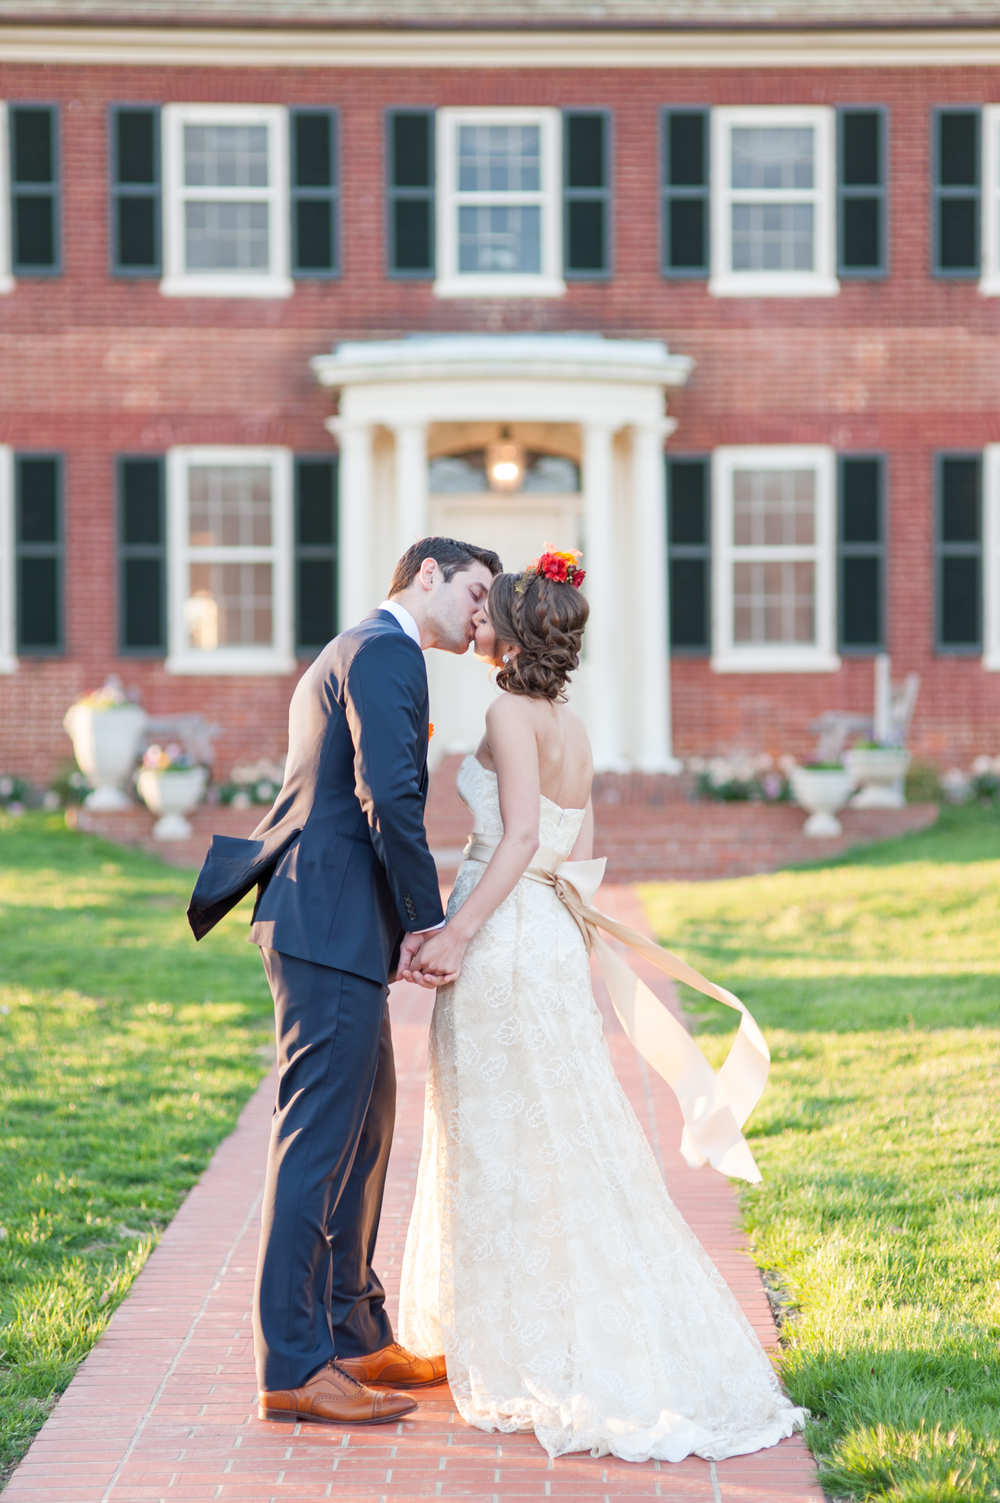 Vibrant Romantic Dutch Wedding at Woodlawn Manor-142.jpg